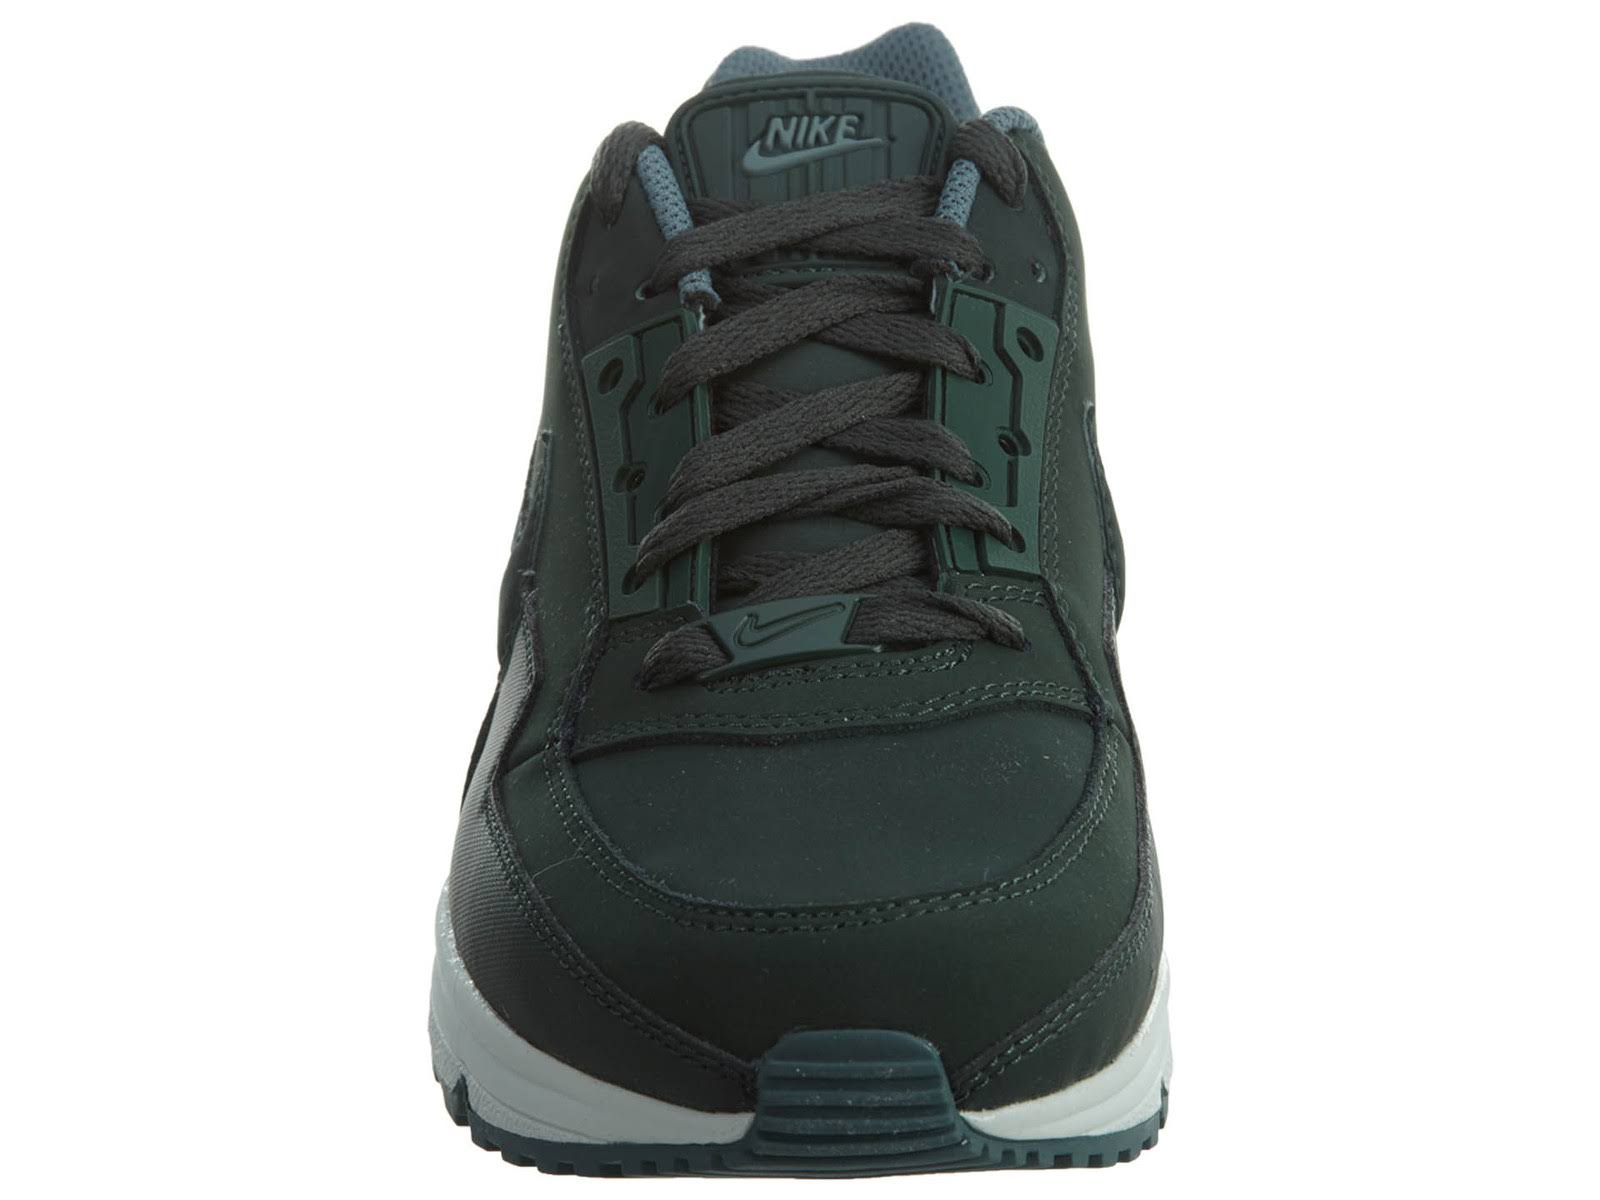 Max 687977 Herrenschuhe Air Nike Green 303 Grove 3 Ltd UgFT6